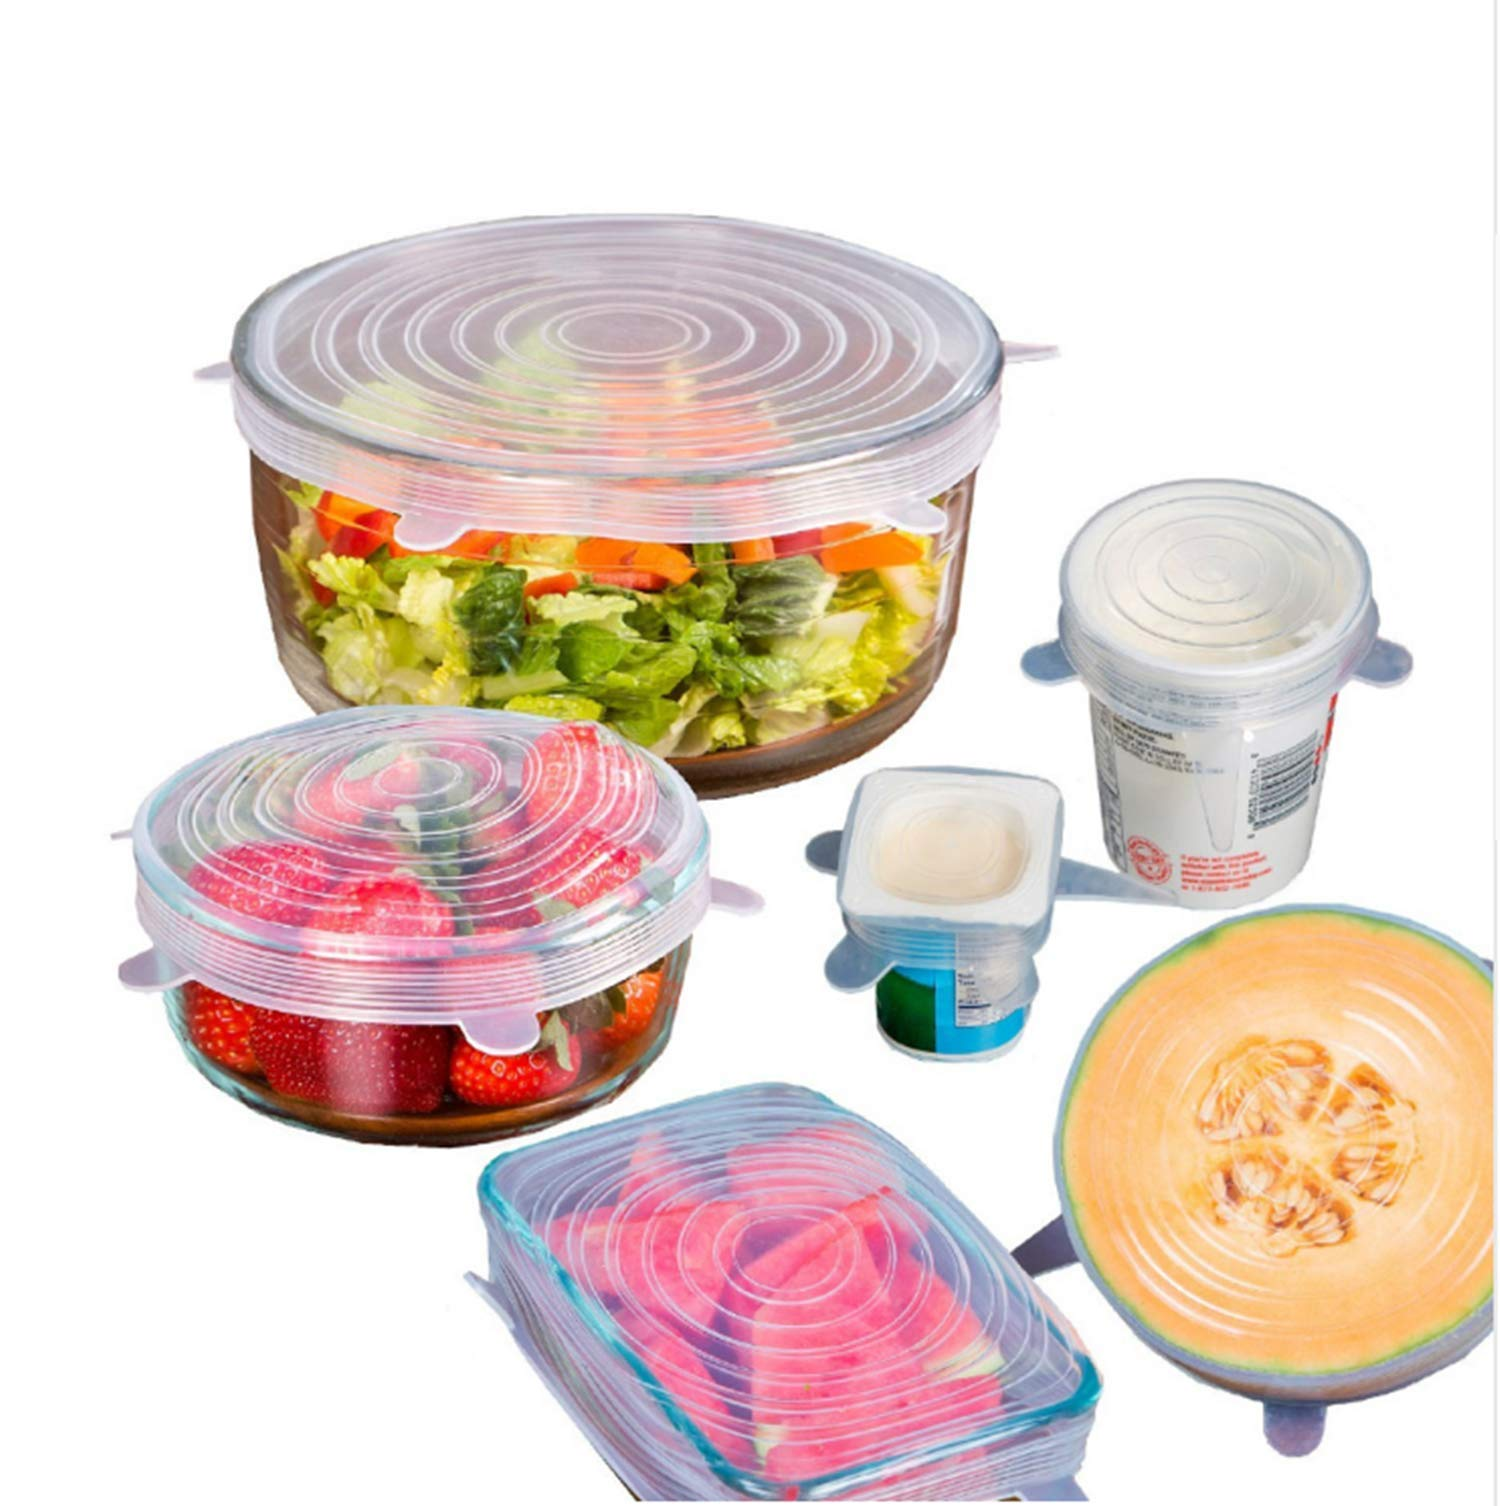 6PCS/Set Silicone Stretch Lids Cover Kitchen Picnic Outdoor Food Preservation Dinner Table Stretchable Multi-Purpose Pot Lid (clear)